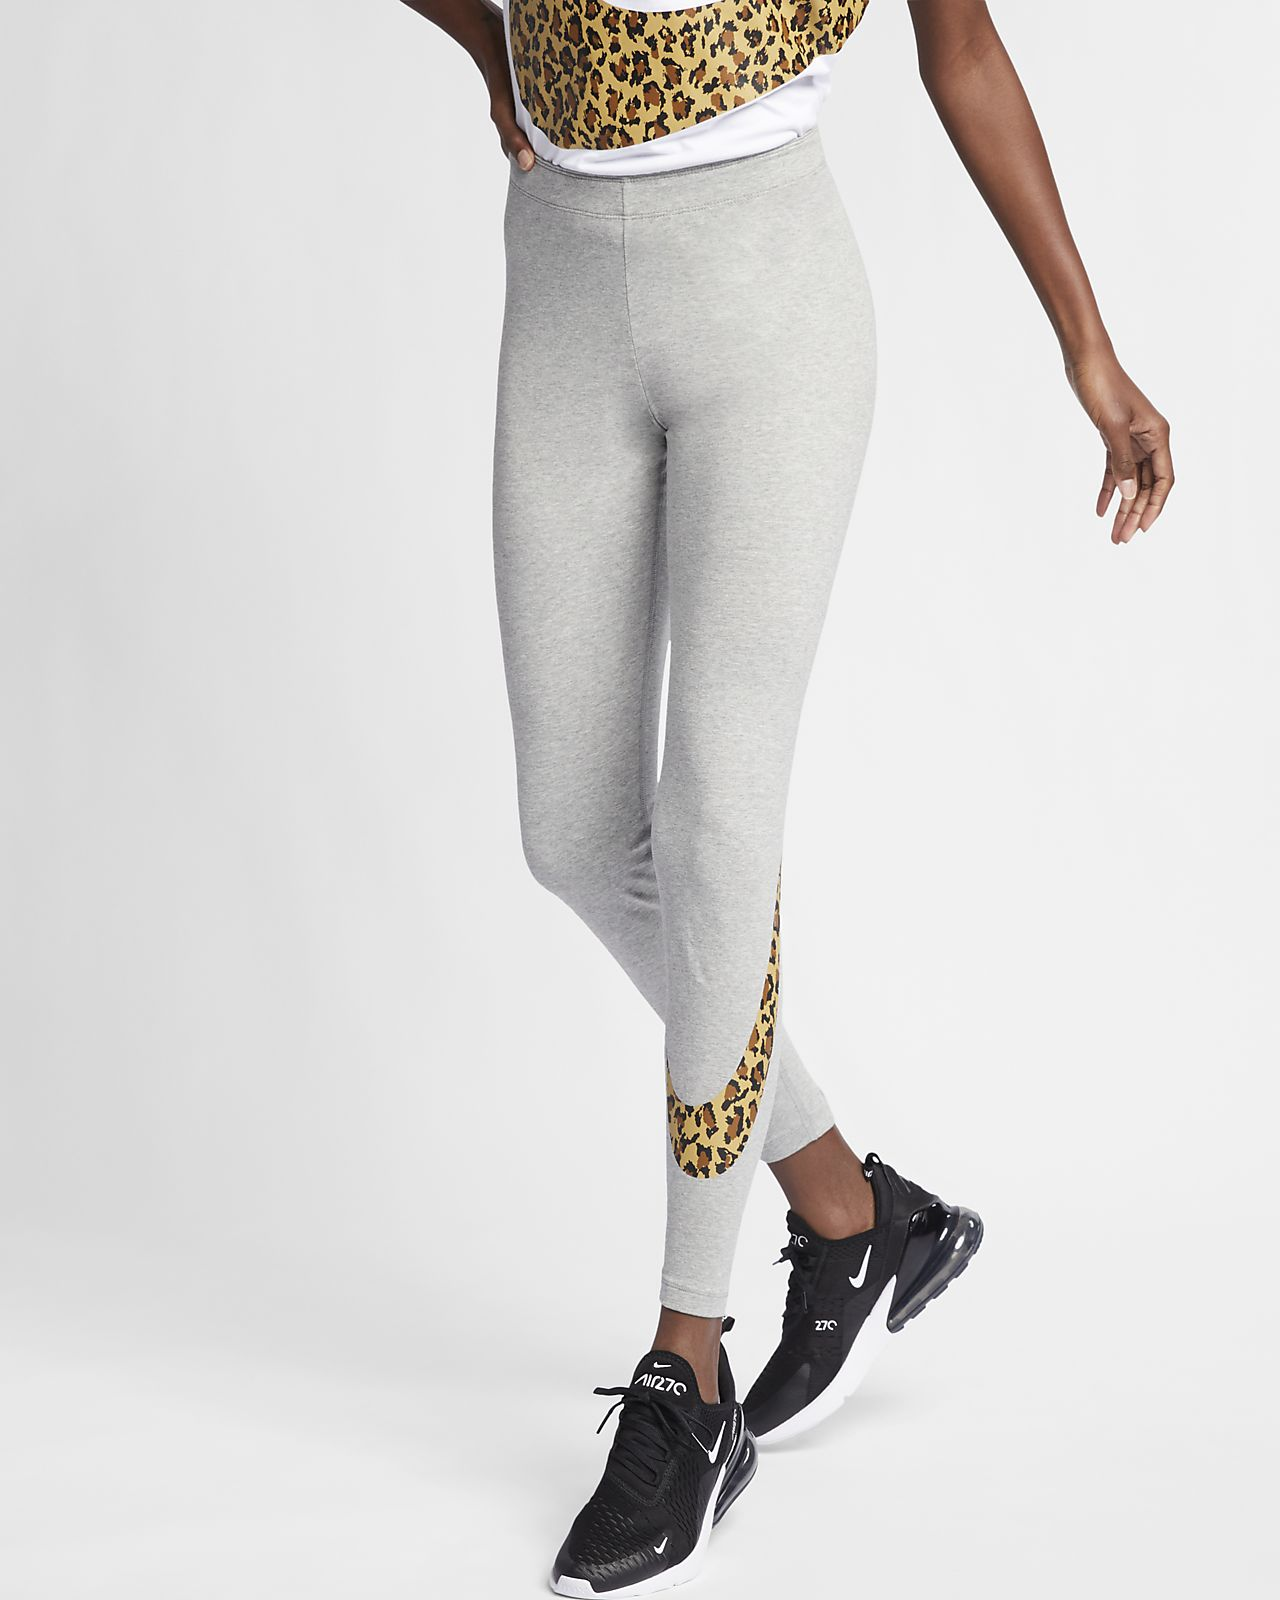 Nike Sportswear Women's Animal Leggings